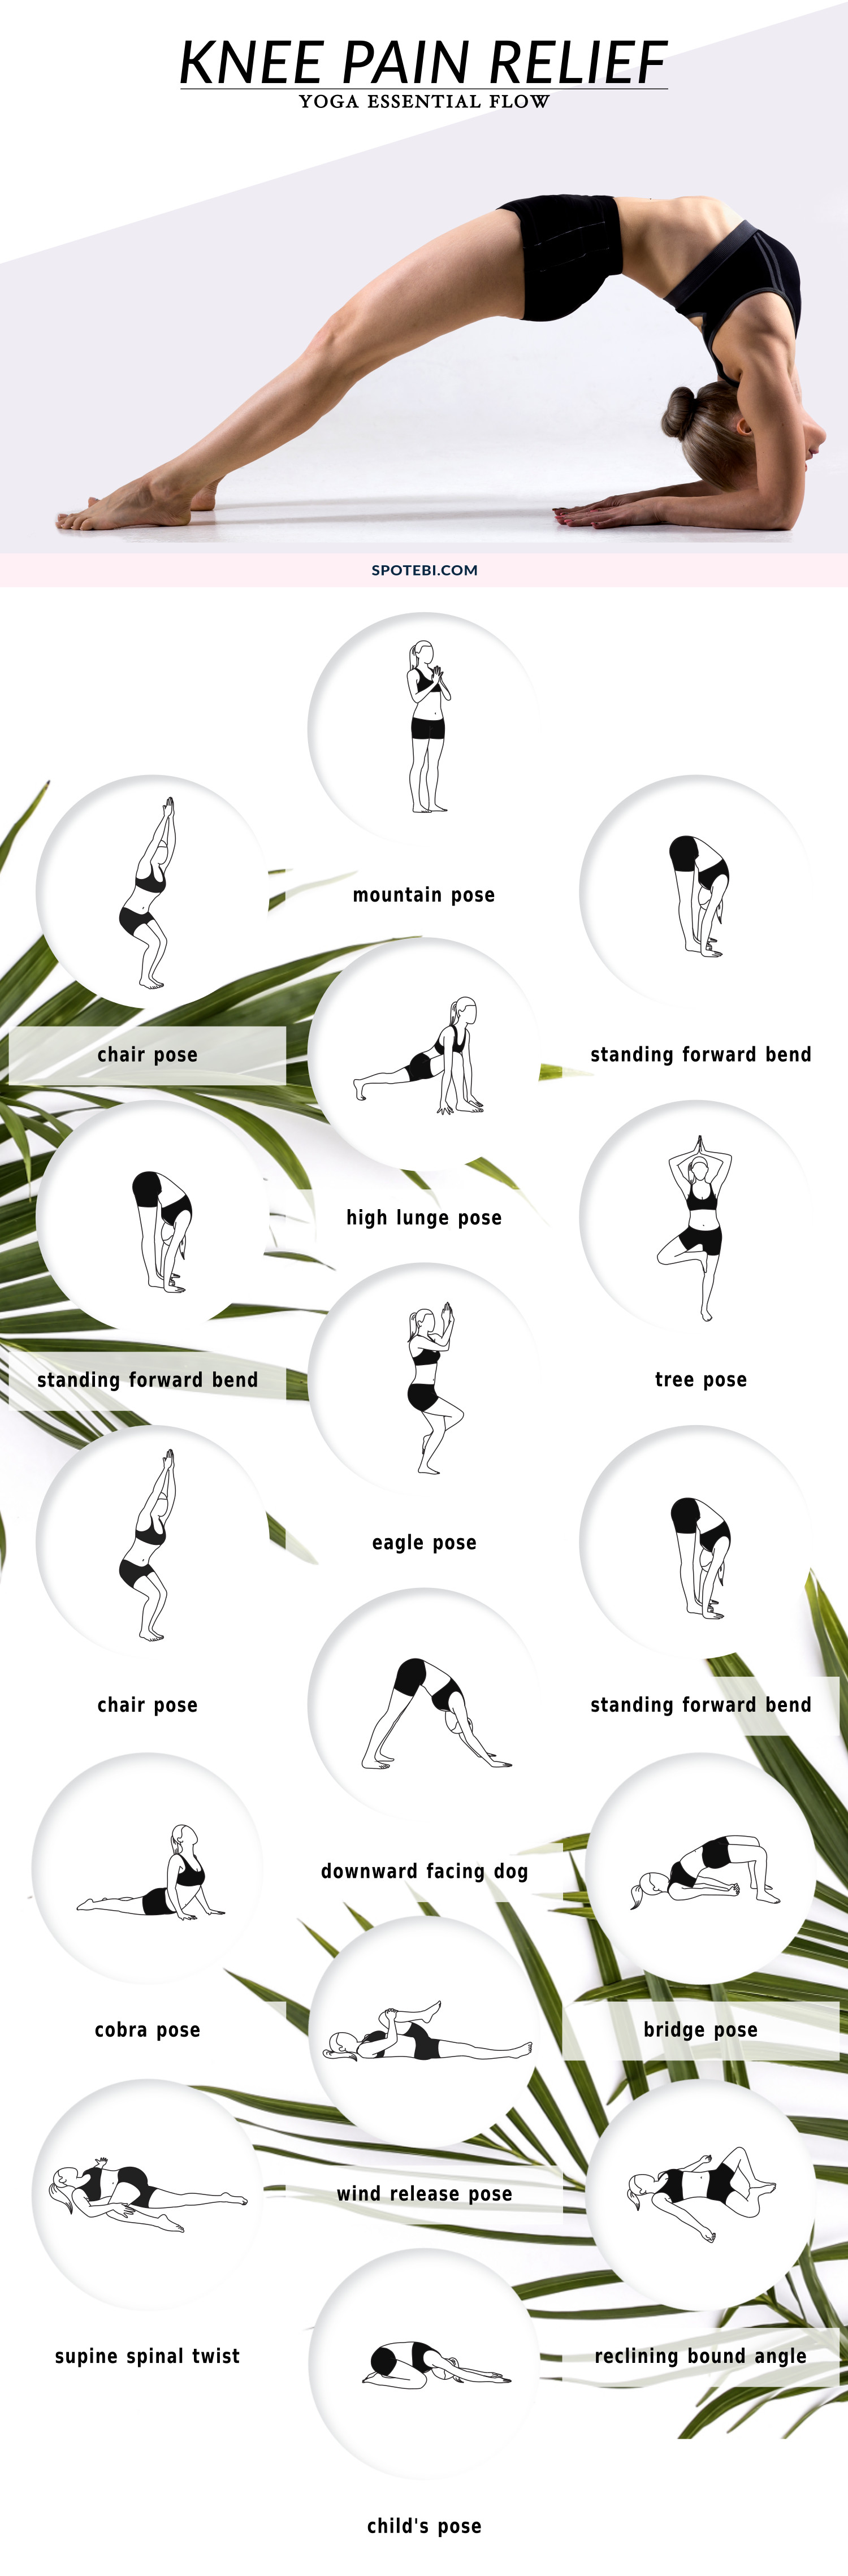 Relieve knee pain at home with this 12-minute yoga essential flow. Perform these yoga poses mindfully to help protect the knees, improve alignment and regain knee strength and flexibility. https://www.spotebi.com/yoga-sequences/knee-pain-relief/